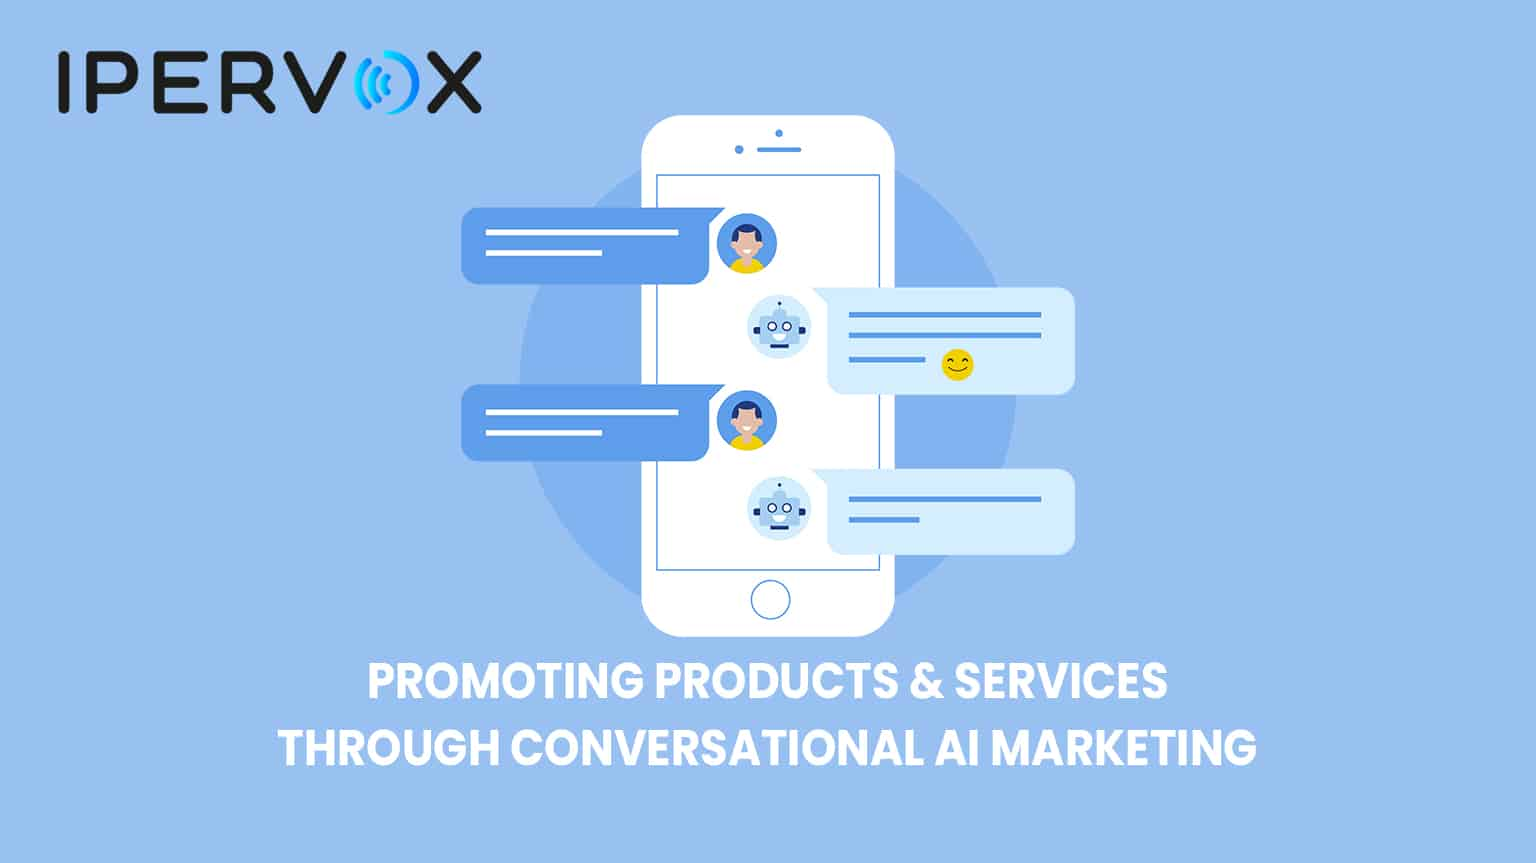 Use Conversational AI Marketing to promote your product